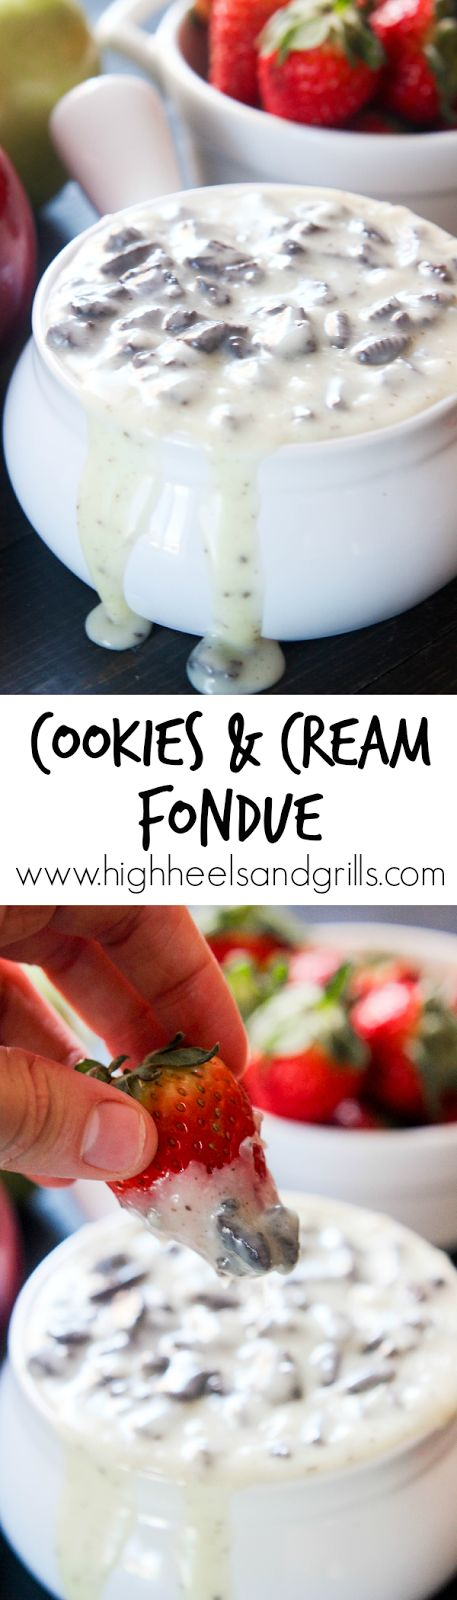 Cookies and Cream Fondue. I am definitely taking this to my next dessert night! http://www.highheelsandgrills.com/2015/03/cookies-and-cream-fondue.html